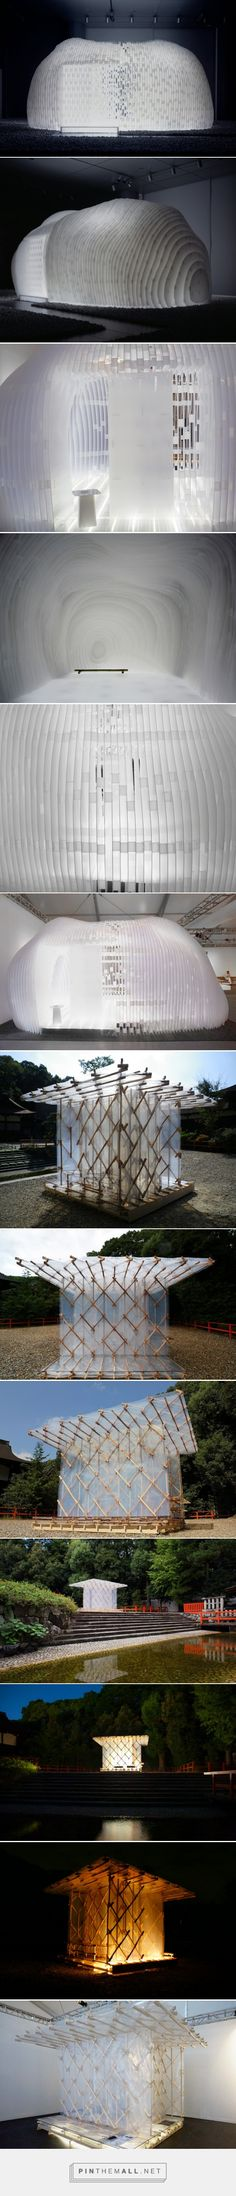 kengo kuma exhibits two mobile pavilions at design miami/ - created via https://pinthemall.net